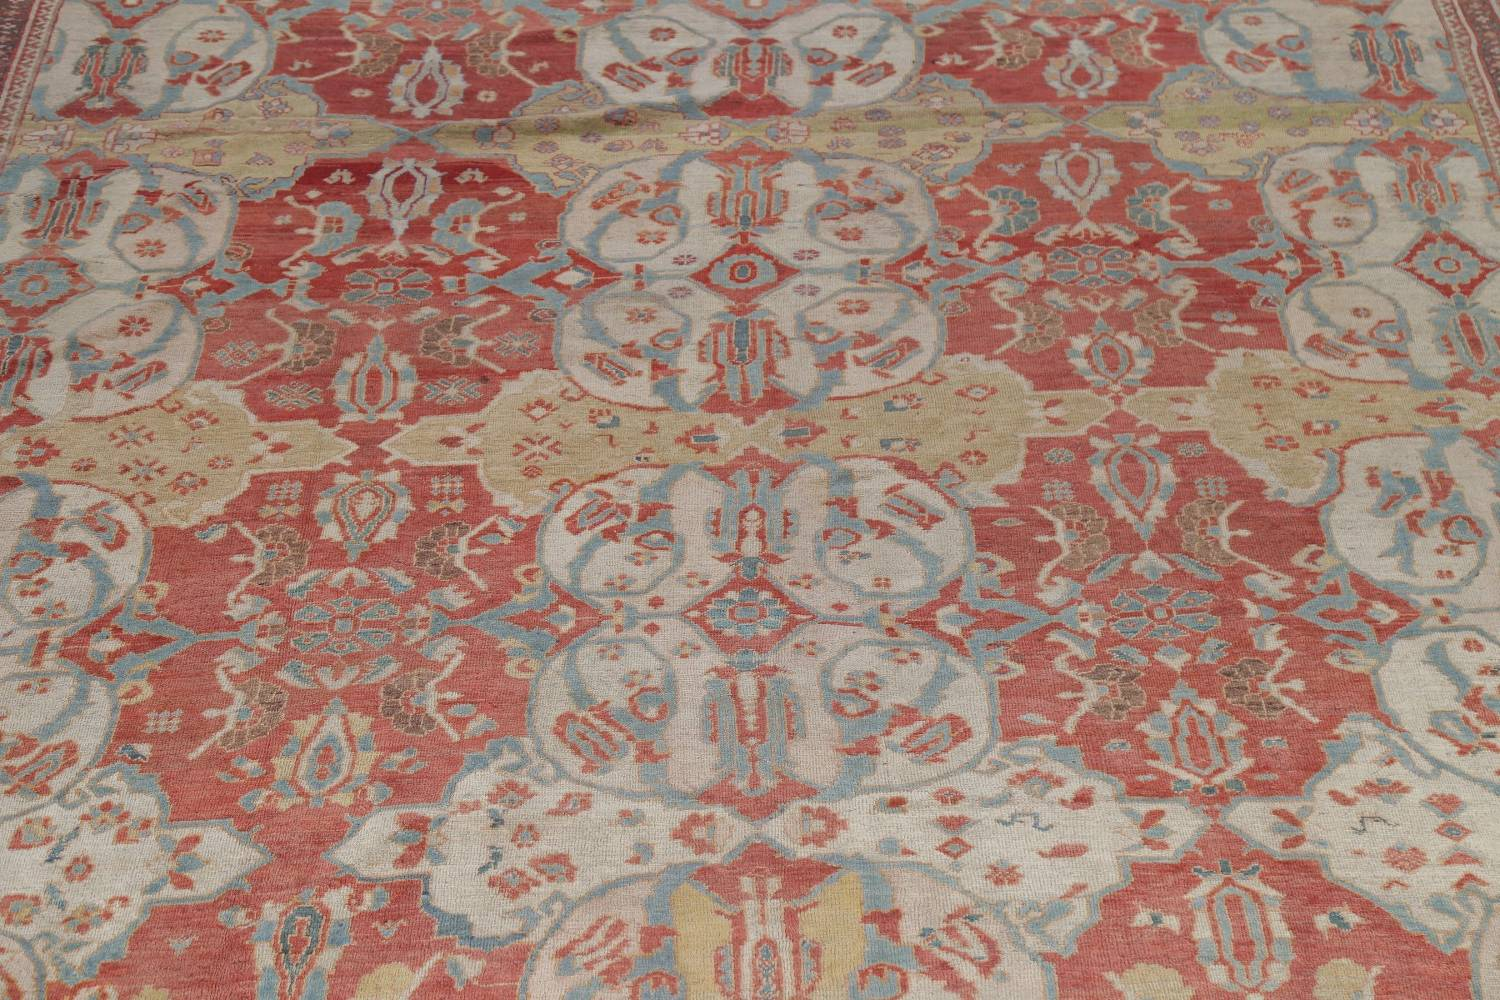 Palace Size Pre-1900 Antique Sultanabad Persian Rug 14x24 image 4